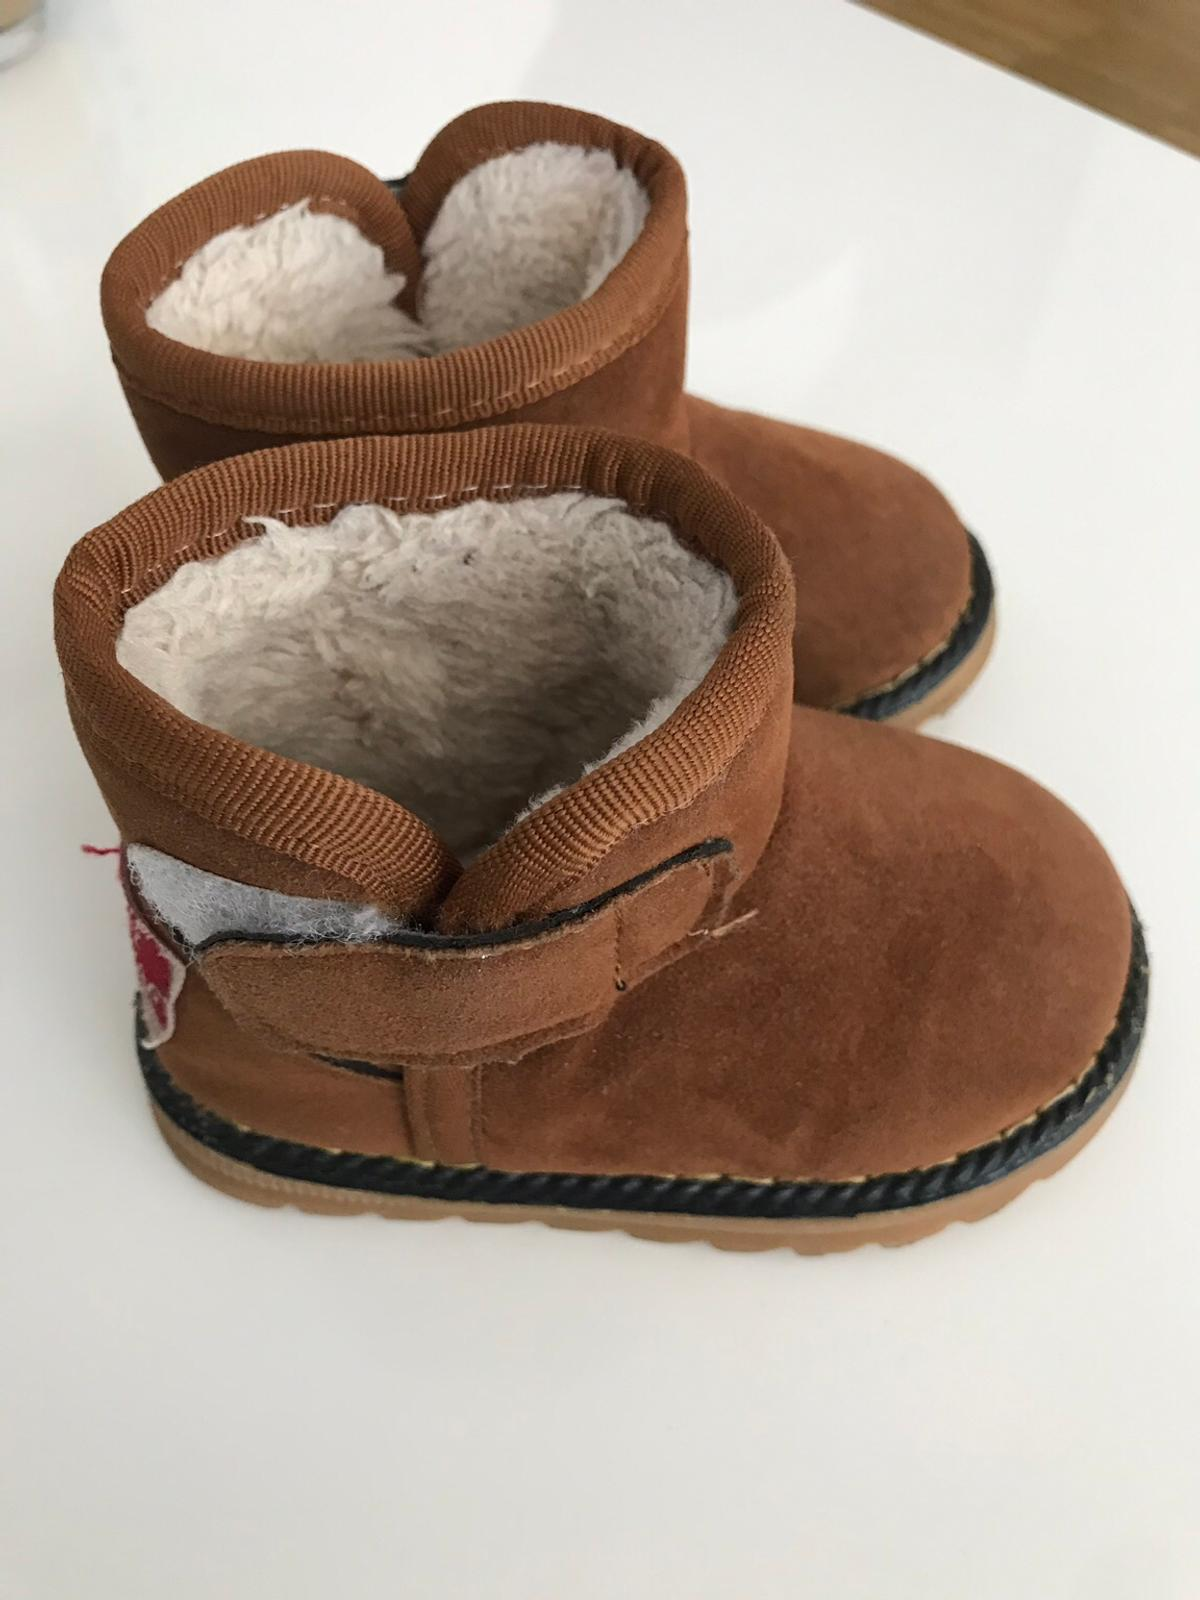 competitive price 691e3 1298f Kinder/Baby Winterschuhe in 6850 Dornbirn für 6,00 € zum ...